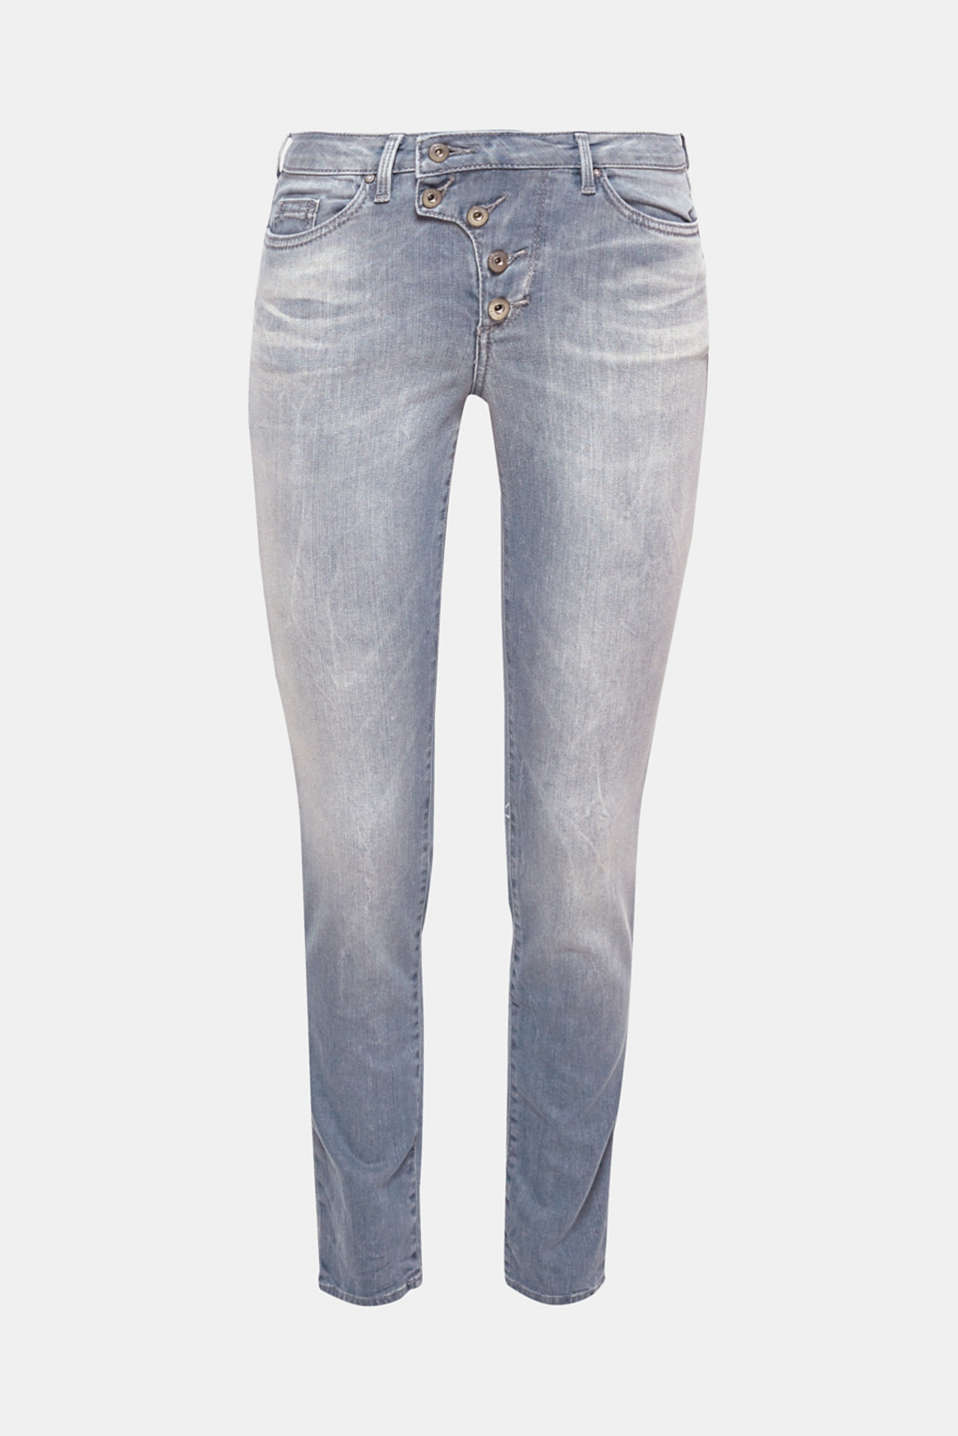 These trendy jeans with a vintage garment wash and stretch are an absolute style highlight with the striking button fly.